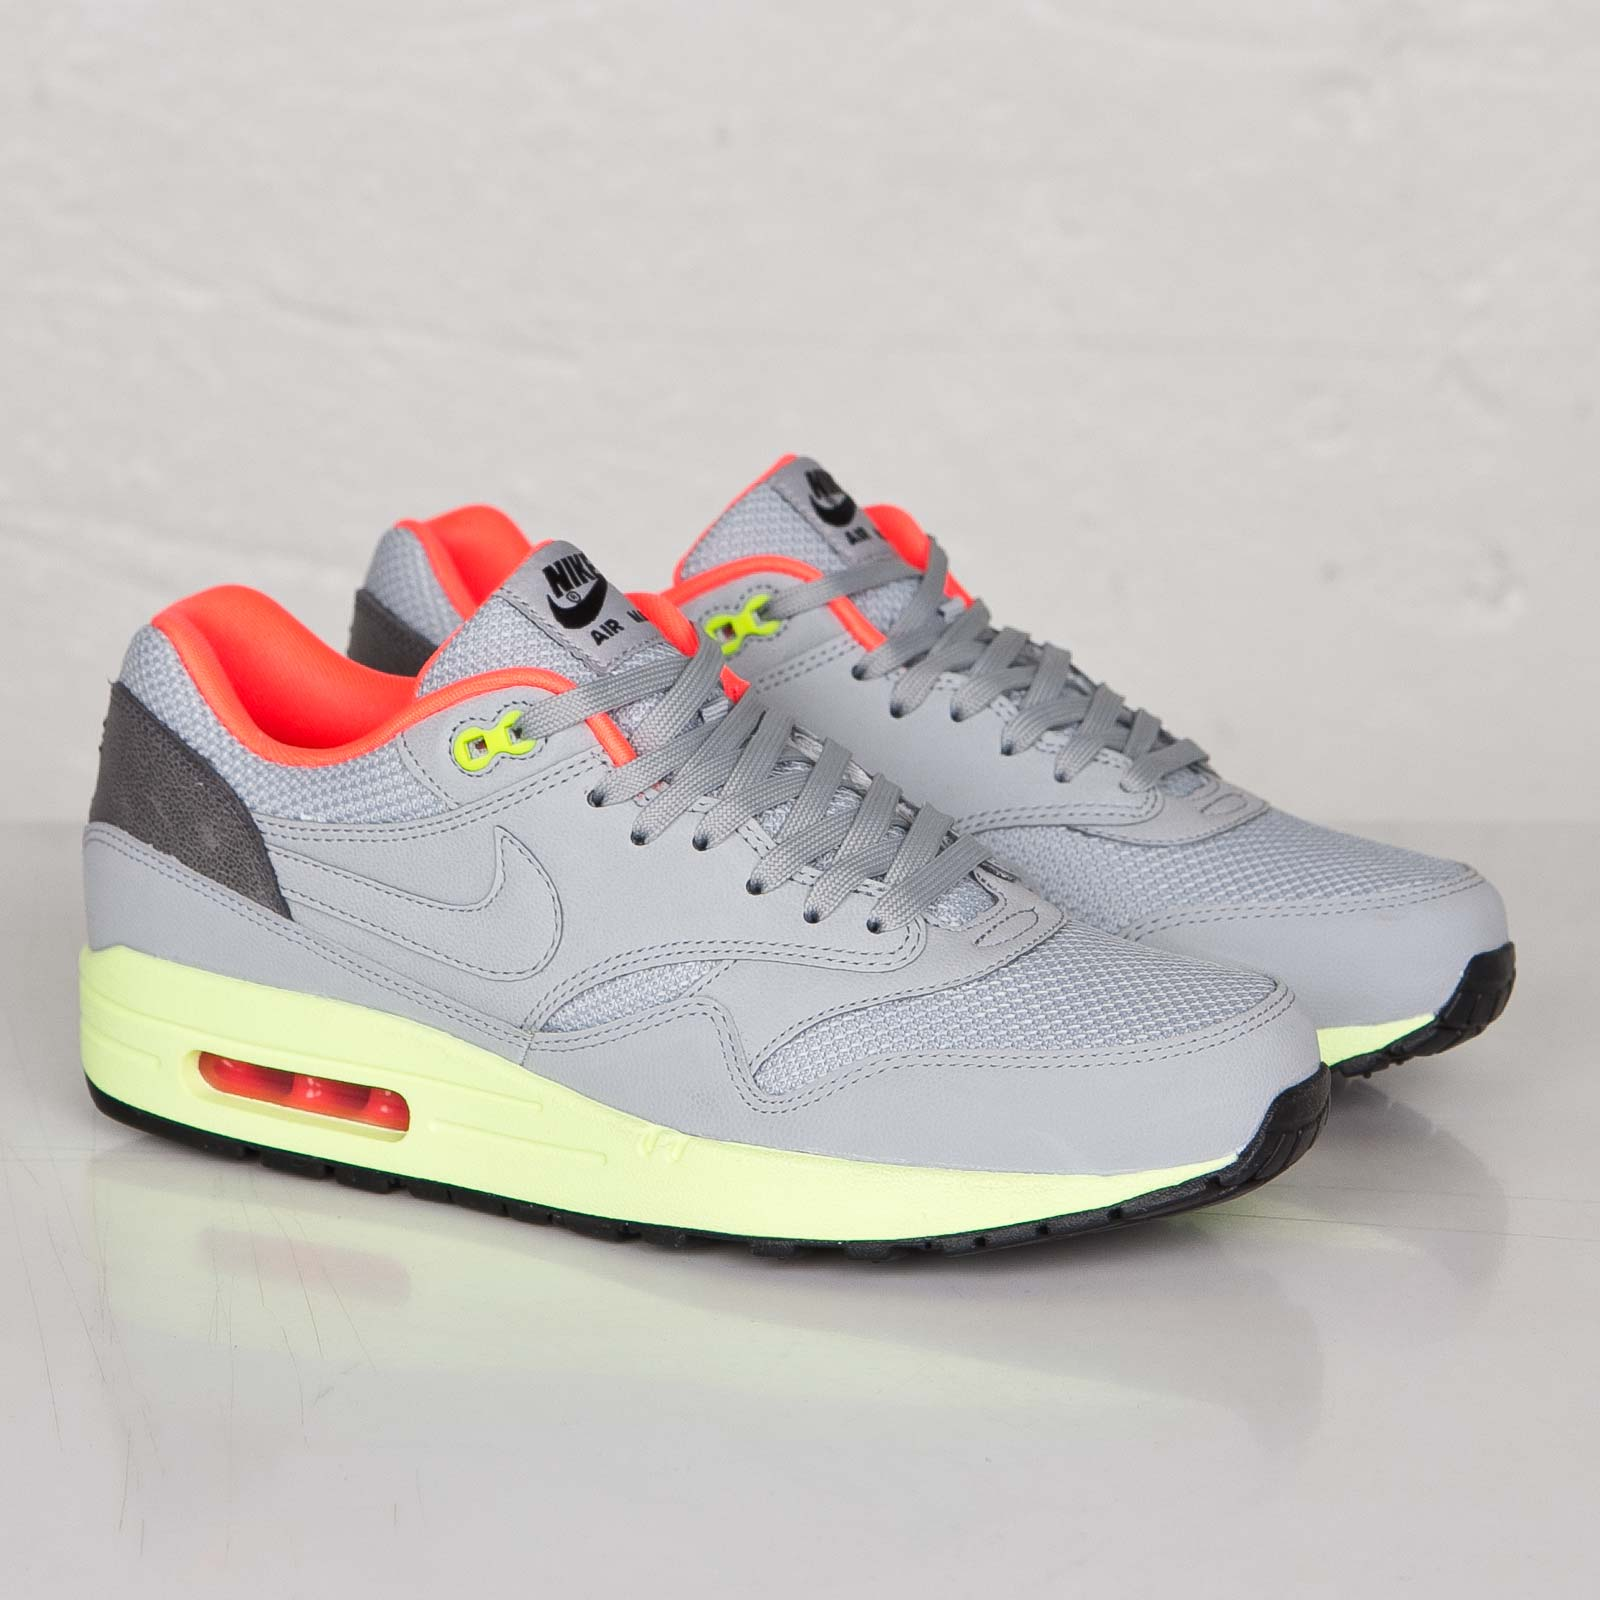 Nike Air Max 1 FB 579920 003 Sneakersnstuff | sneakers